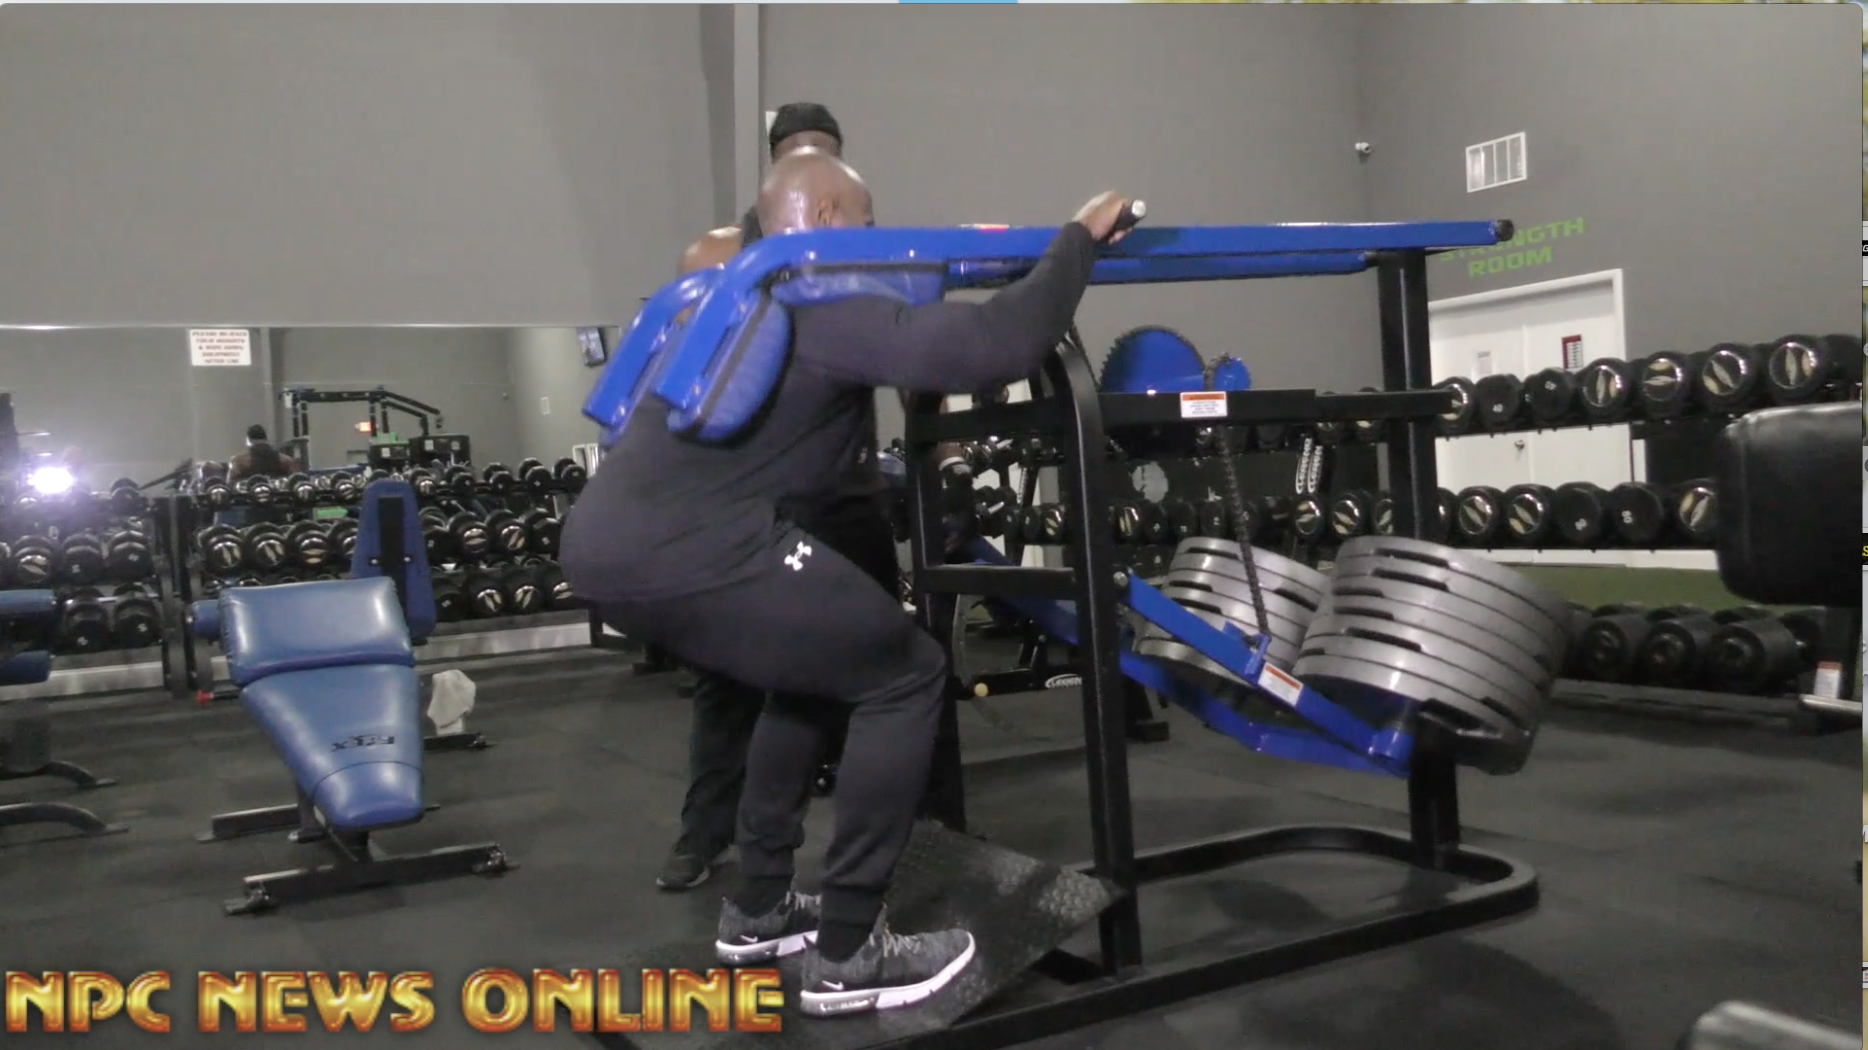 IFBB Classic Physique Pro Lee Banks Preps for the 2018 Arnold Classic With Travales Blount Video